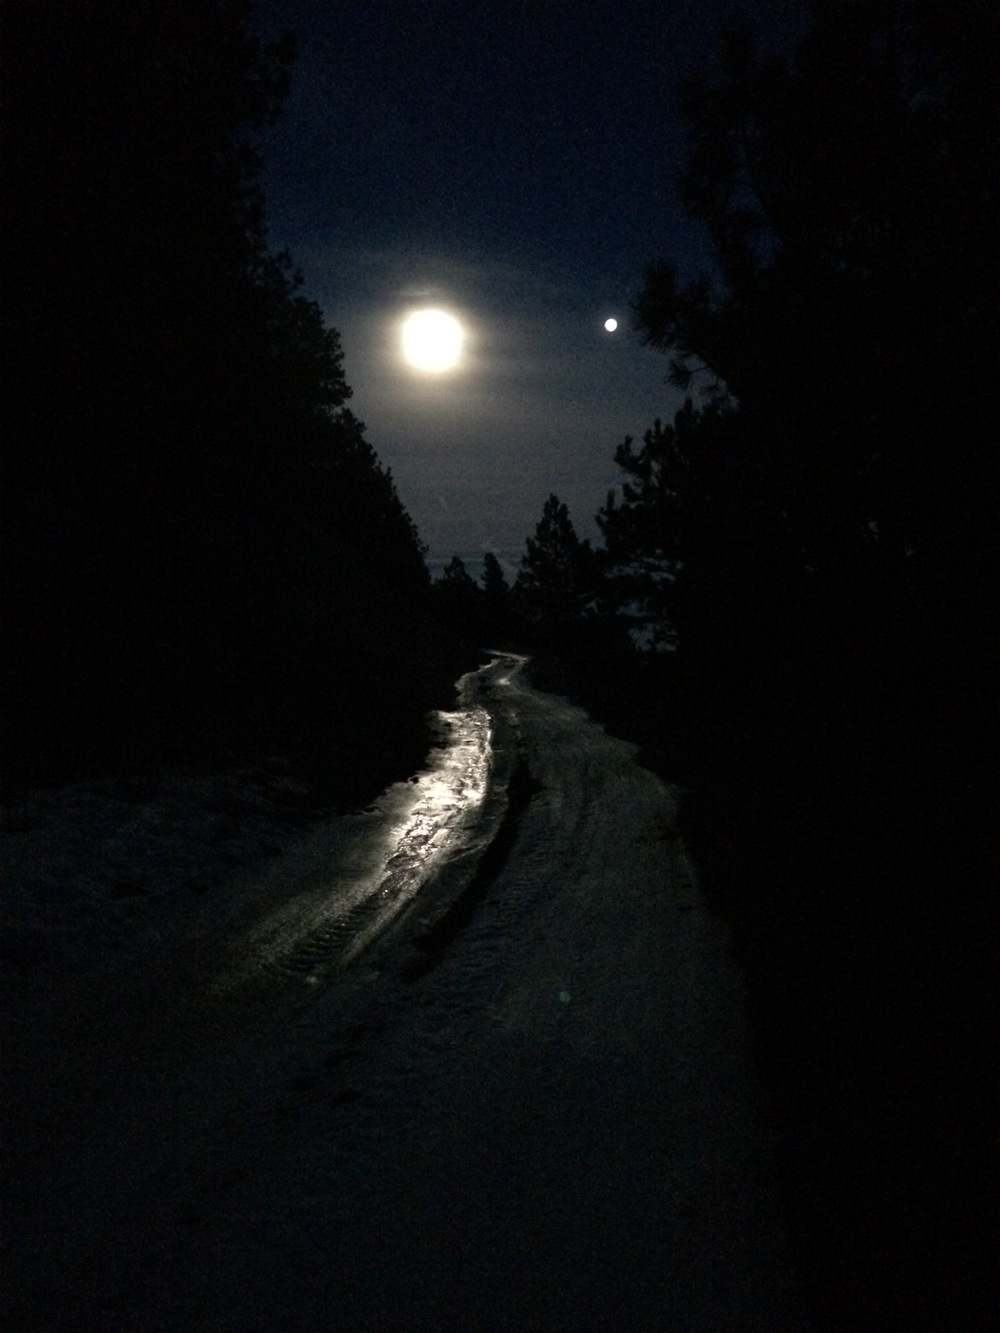 Full moon lighting on an icy dirt road. Venus to the right of the moon. Super cool.